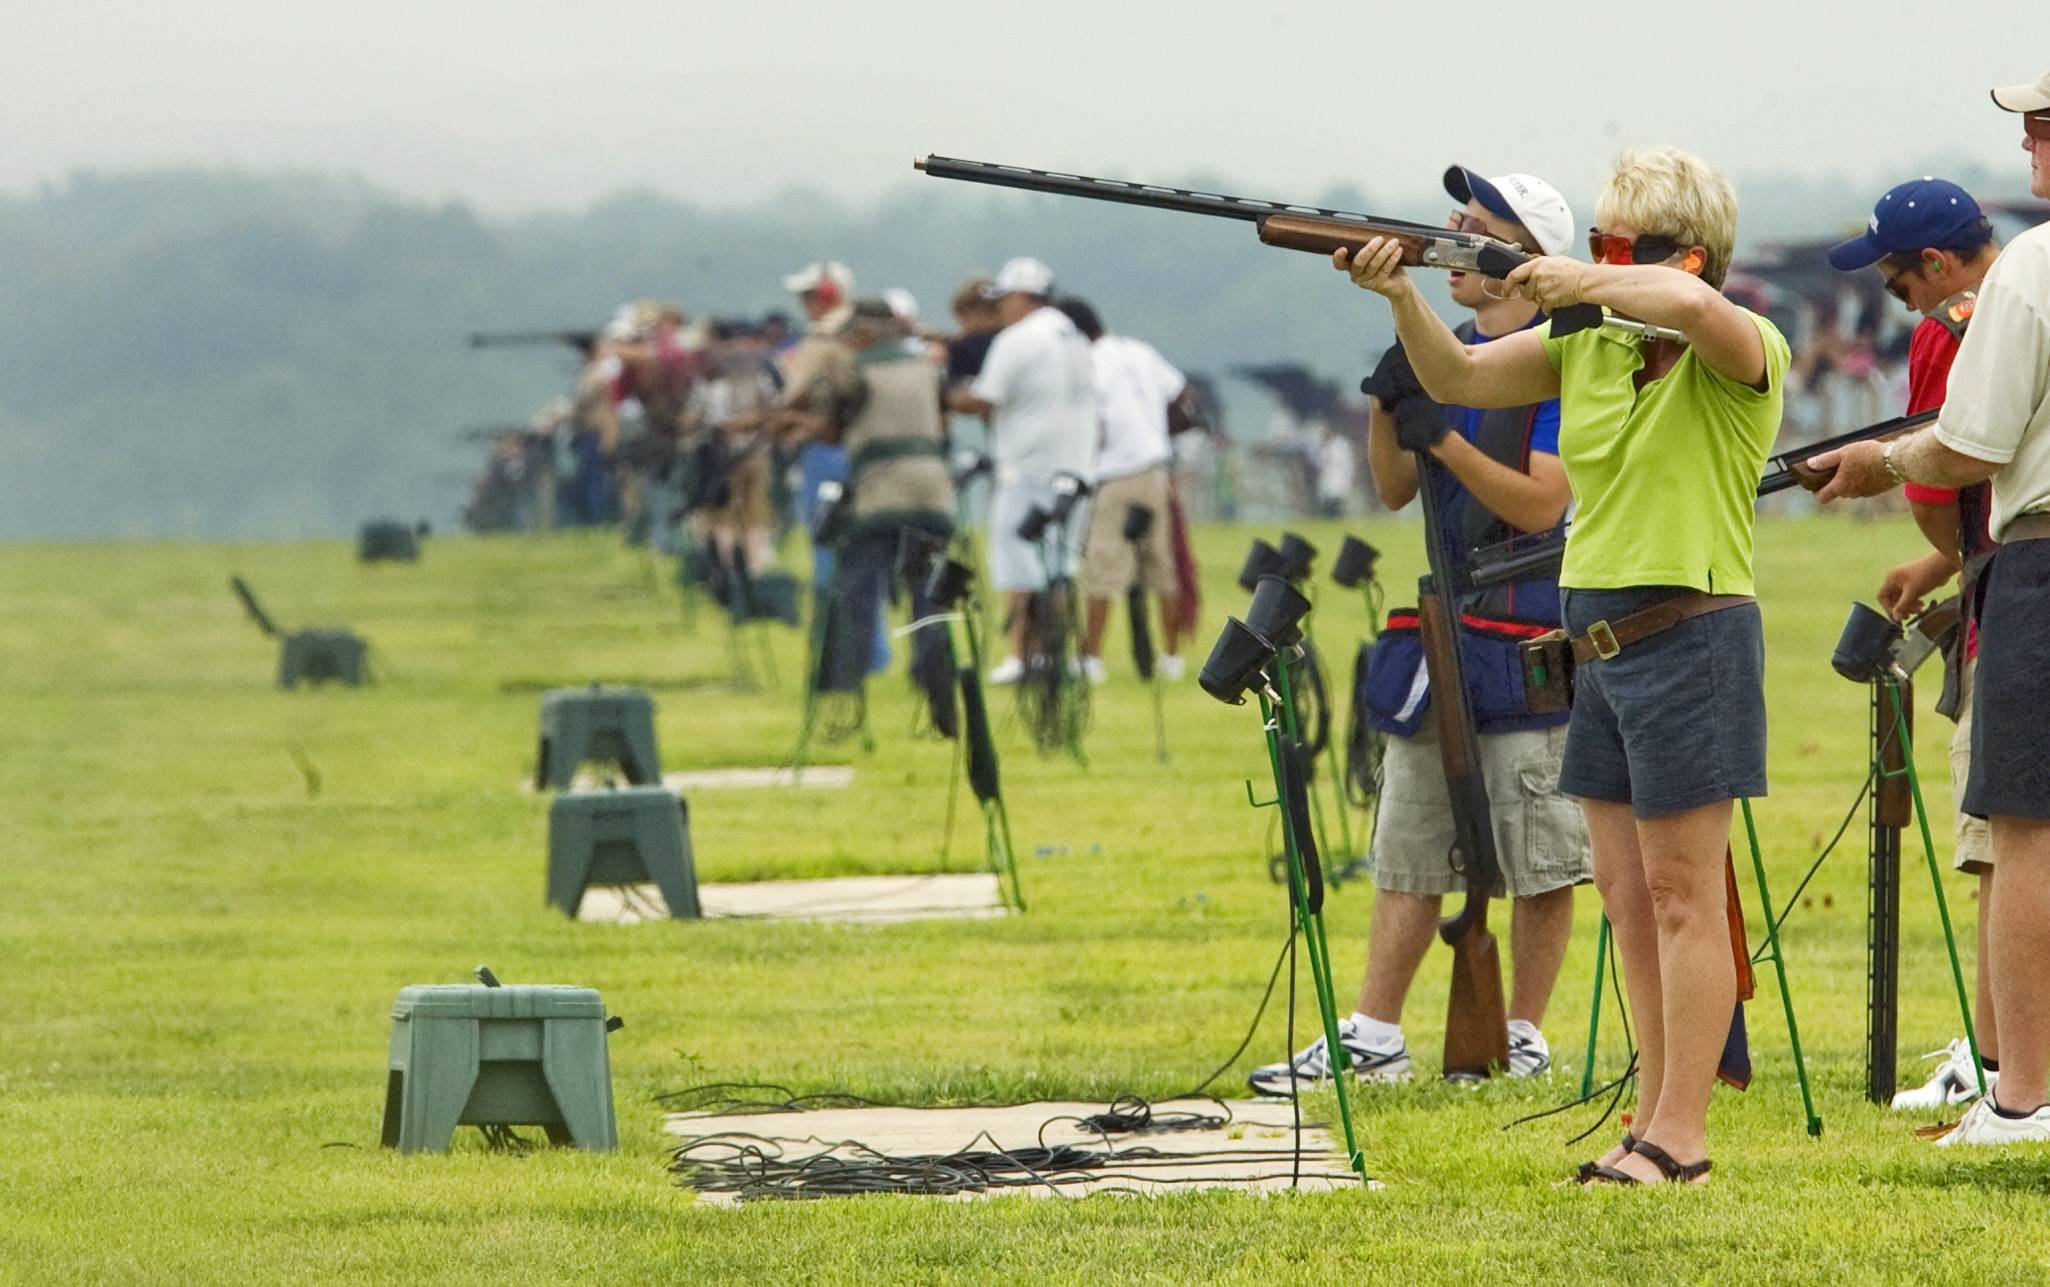 Shooters take aim during competition at the Grand American Trapshooting Championship at the World Shooting and Recreational Complex in Sparta. The new state budget signed by Gov. Pat Quinn last week includes millions of dollars for pet projects statewide. The more than 100,000-acre Department of Natural Resources facility in the Southern Illinois community is getting more than $1.5 million from the capital budget.